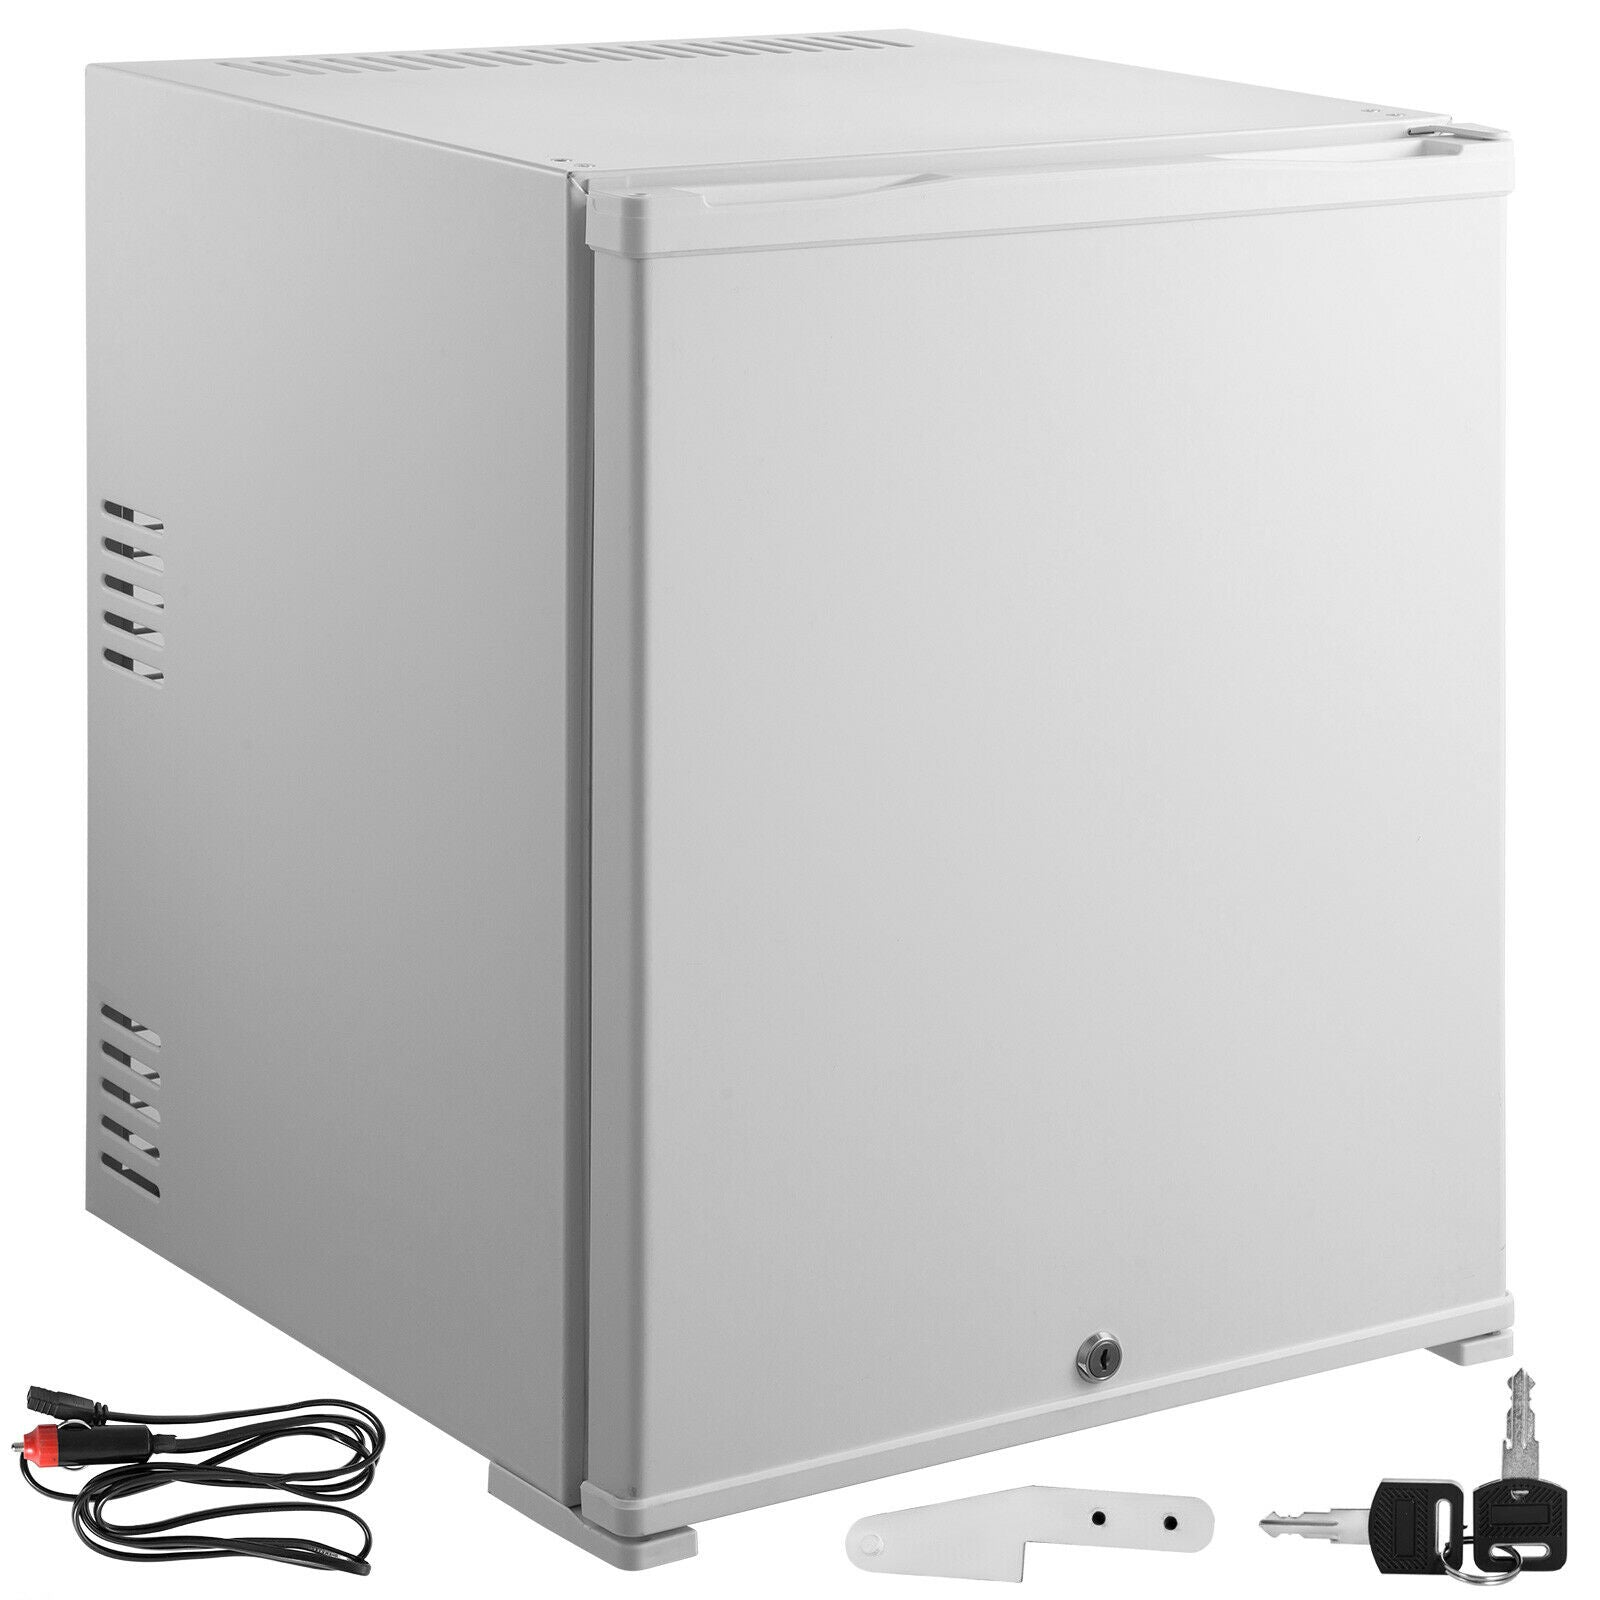 Portable Refrigerator 50l 12v Compact Absorption Fridge White Mini Car Cooler